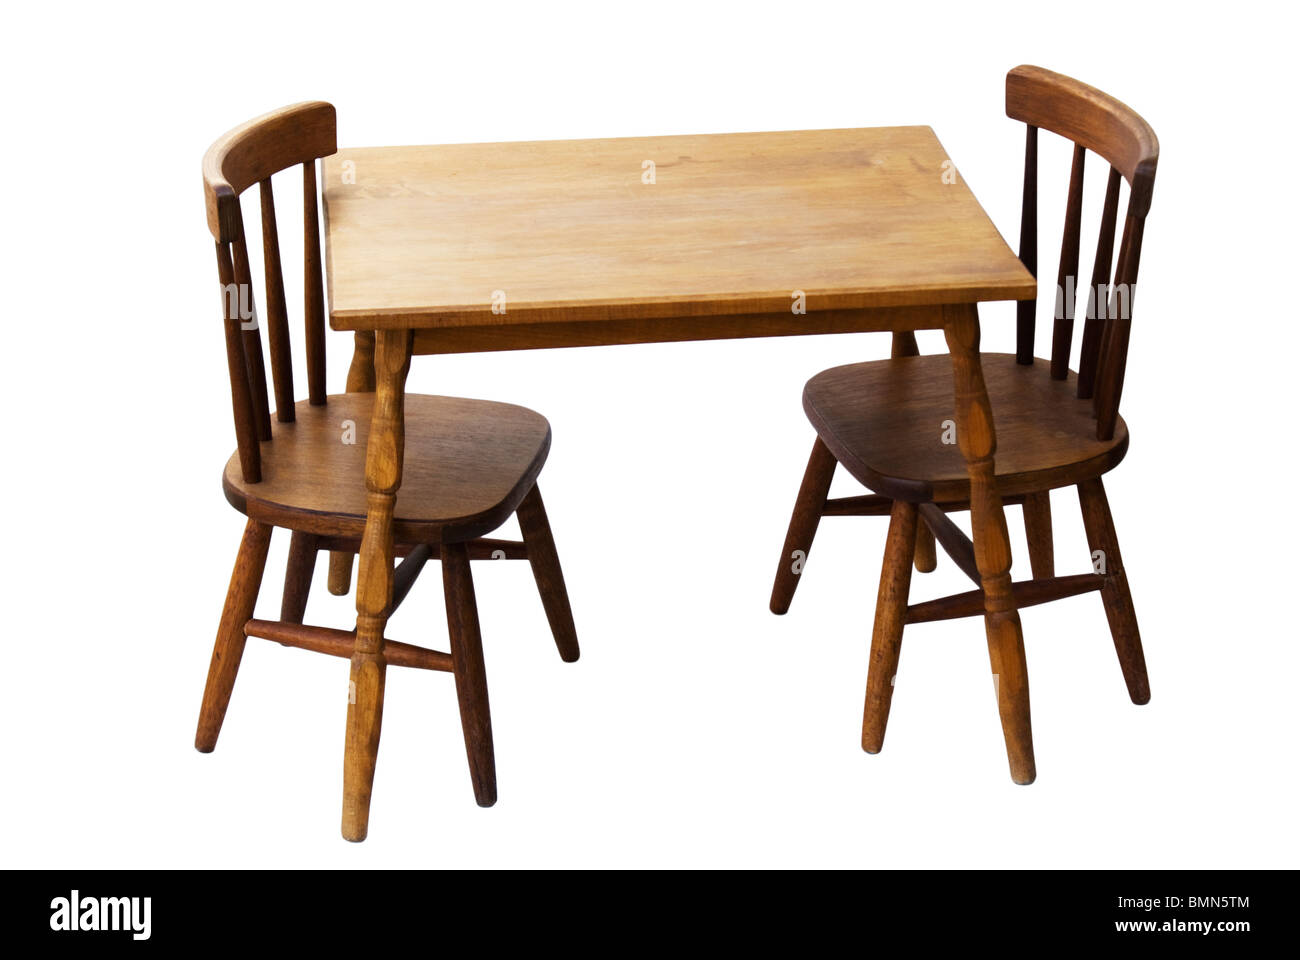 Enjoyable Childs Wood Table And Chair Set With Spindles This Is A Interior Design Ideas Jittwwsoteloinfo